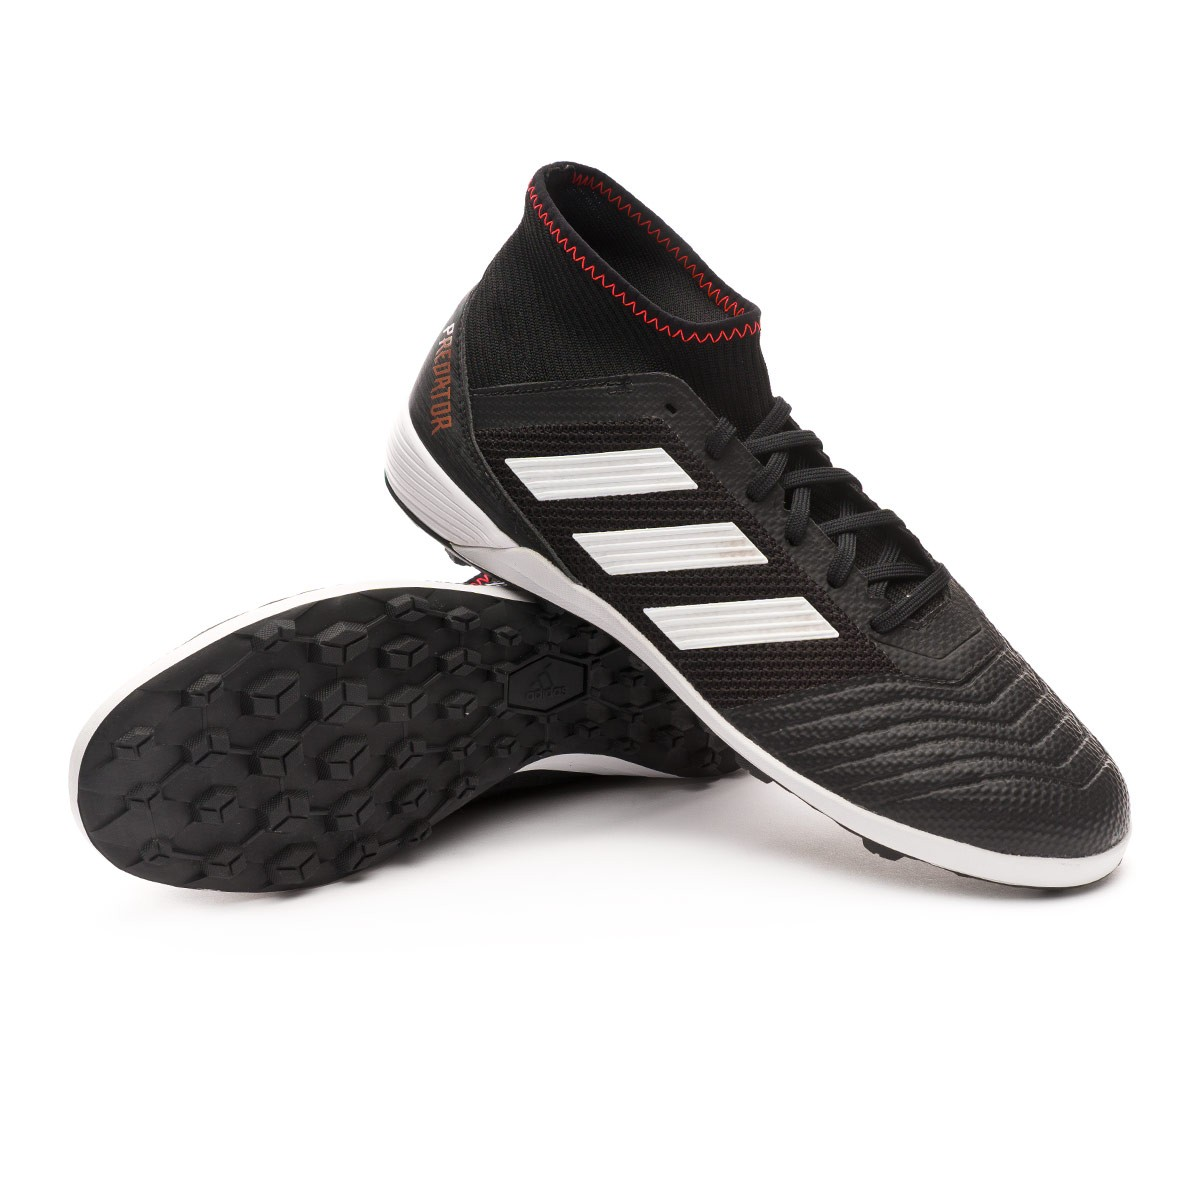 ... where to buy football boot adidas predator tango 18.3 turf core black  white solar 41f6b d2103 ... bb3c8bad4328d